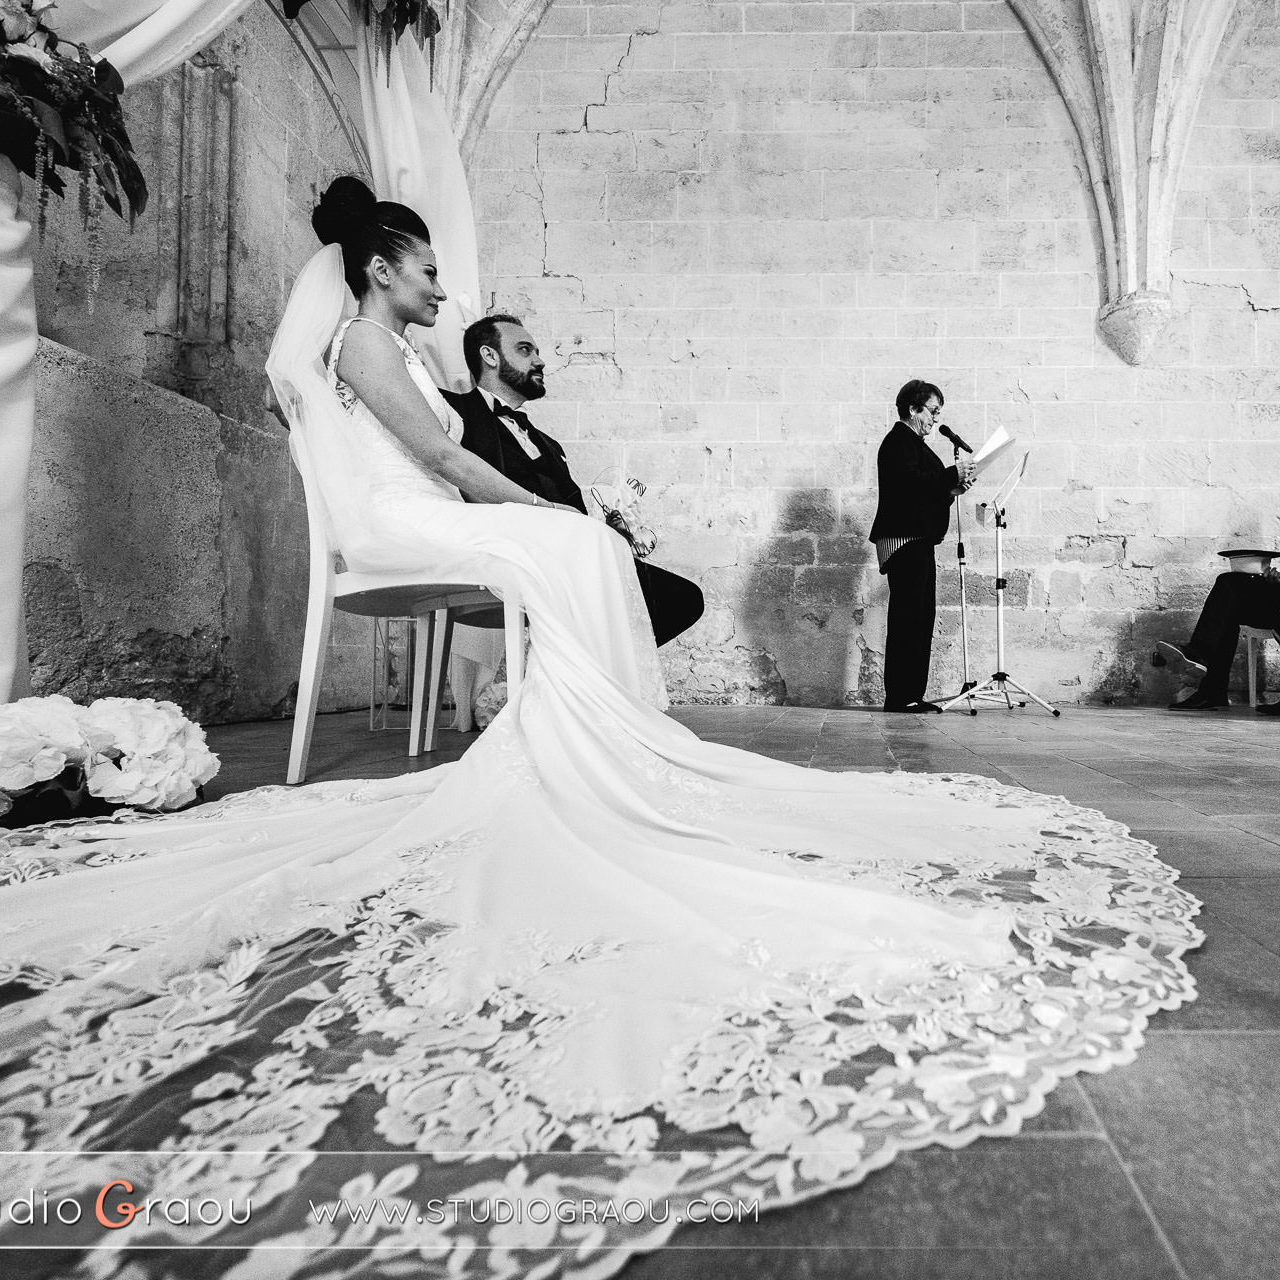 OFFICIANTE NARBONNE CARCASSONNE WEDDING DESIGNER NARBONNE WEDDING PLANNER AUDE mariage studio graou